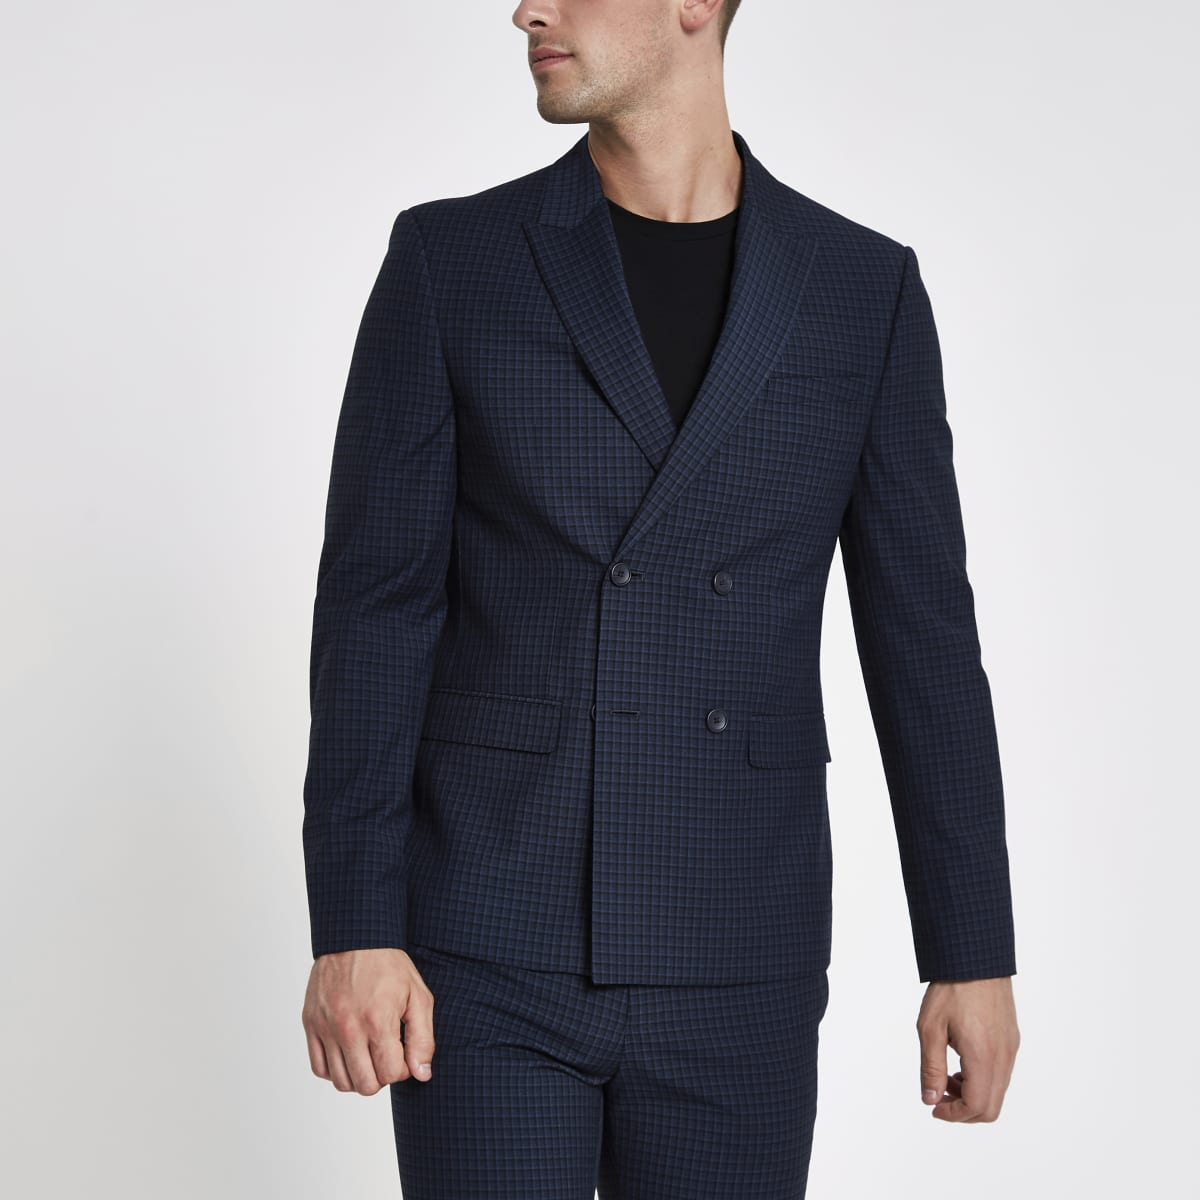 Blue check double breasted skinny suit jacket